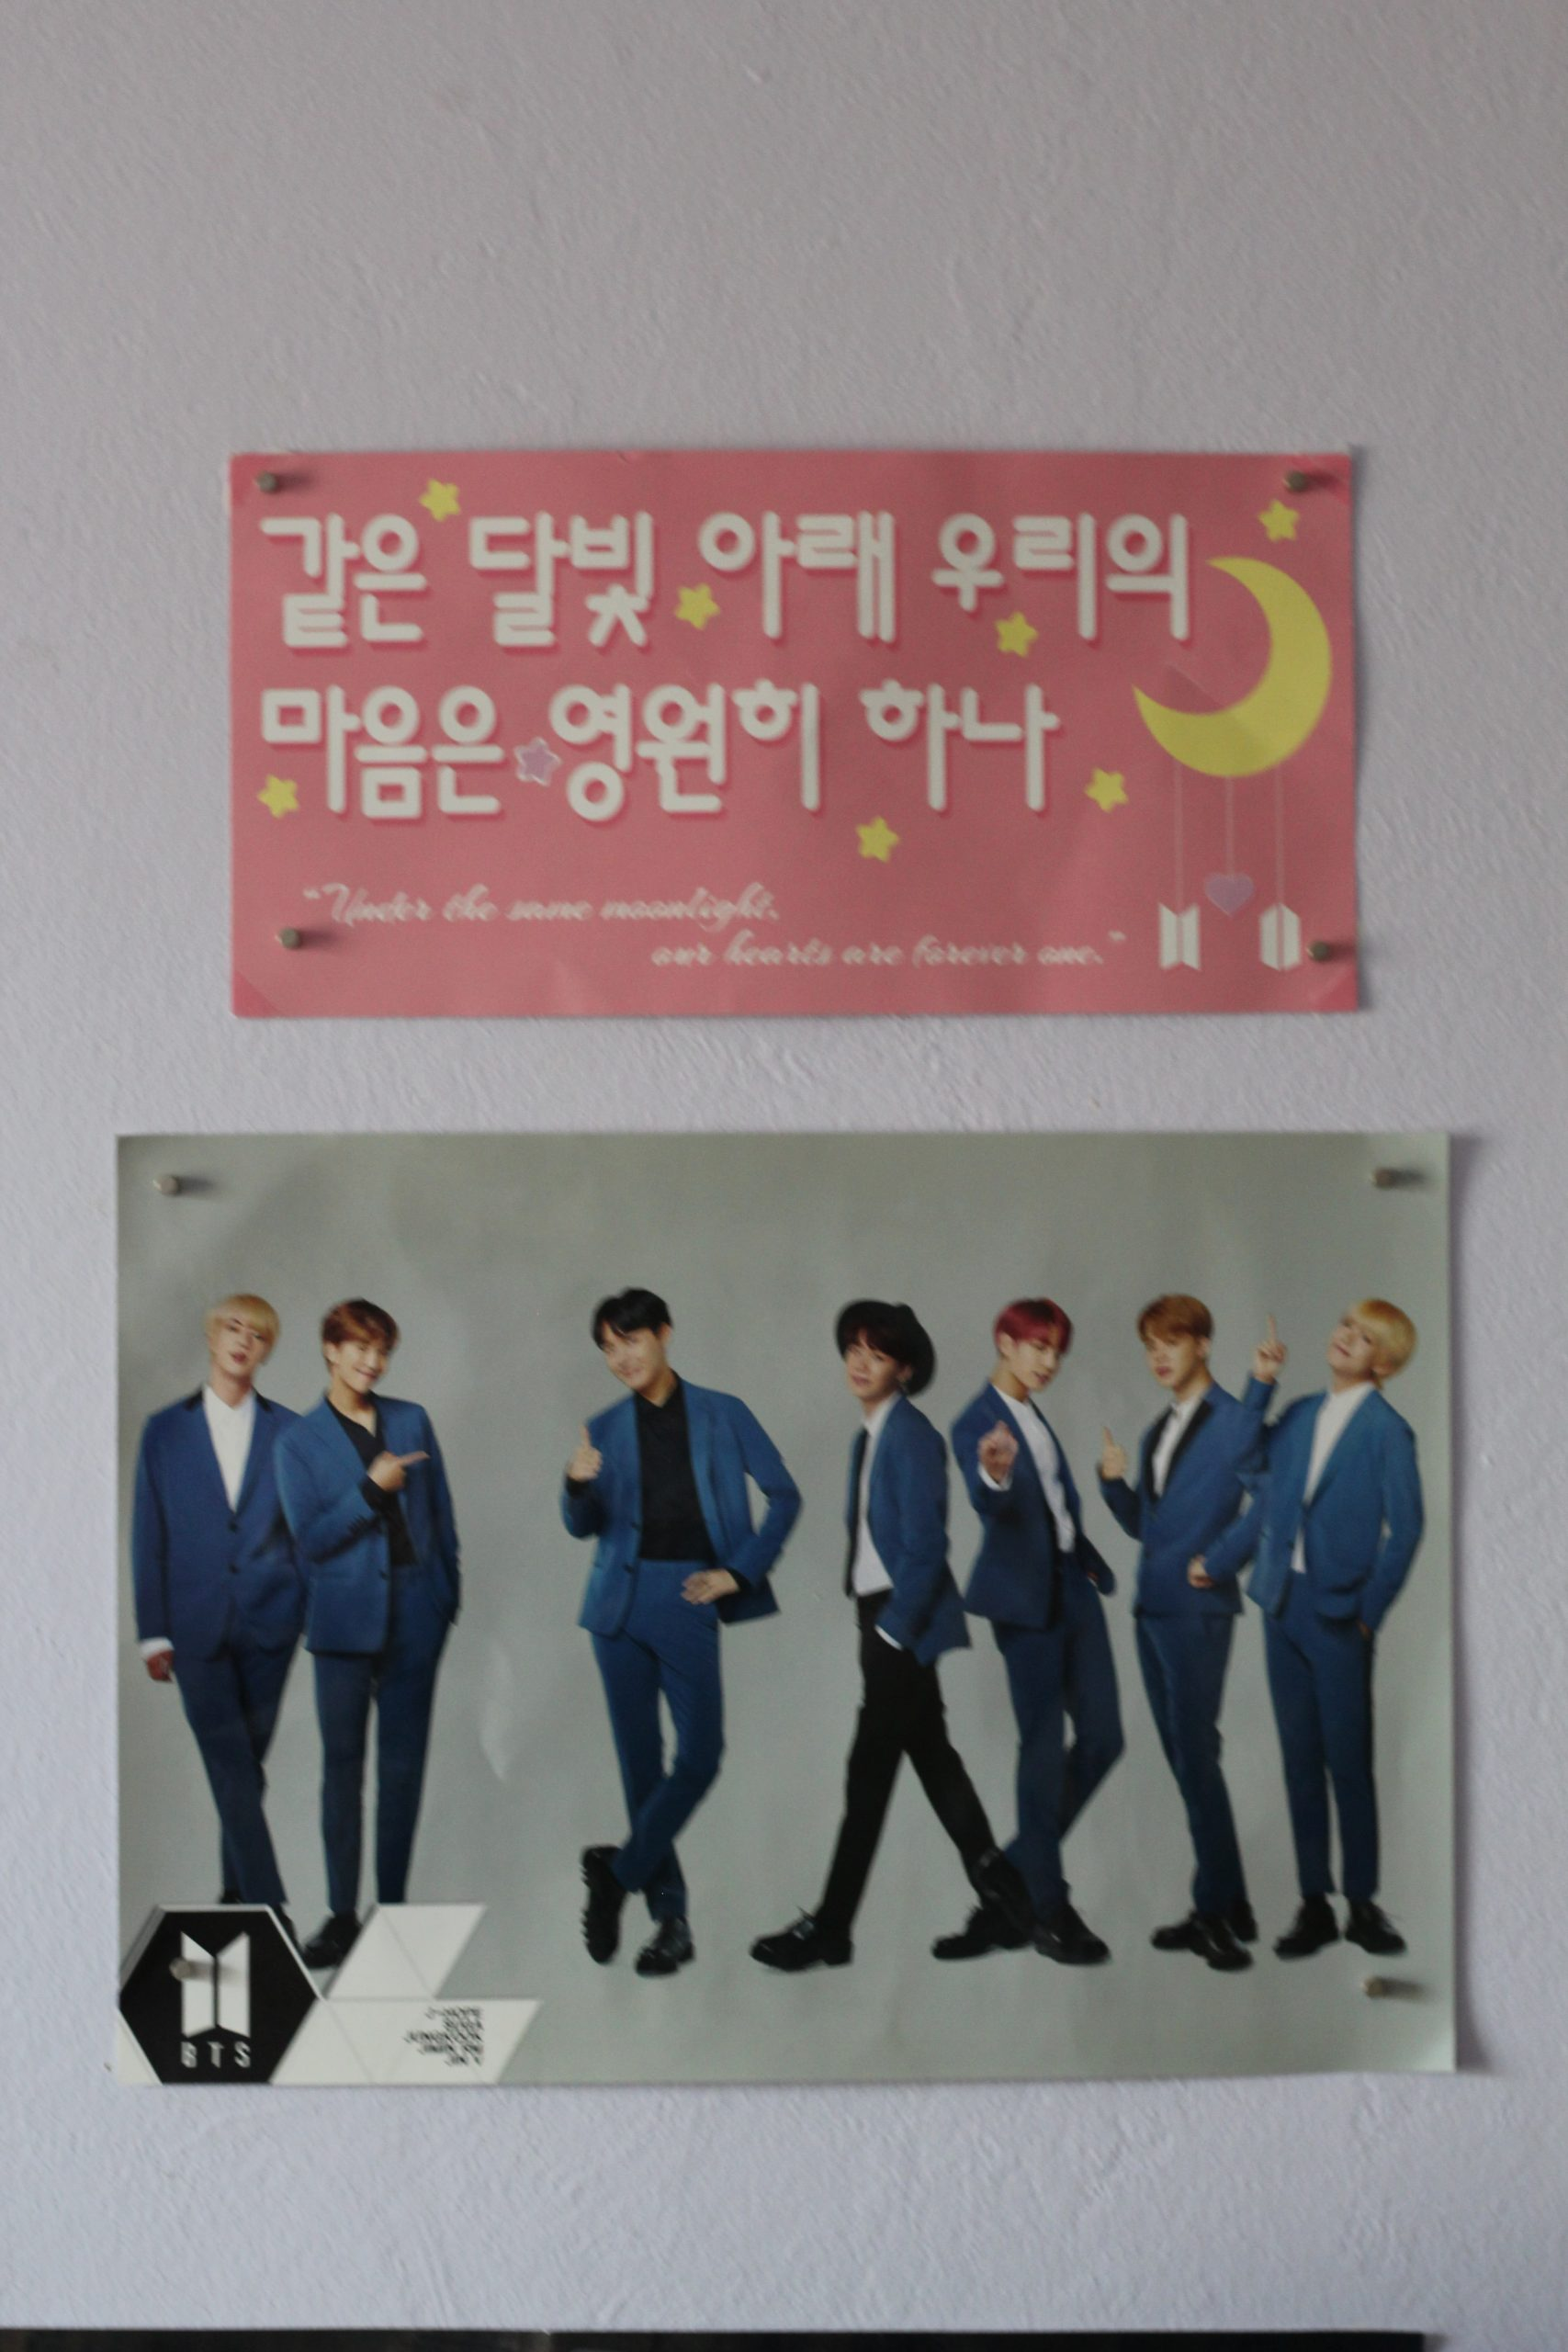 There are two posters of BTS in the picture. One of them is a more traditional postr of the group and the other is a pink concert sign with a Korean phrase on it.